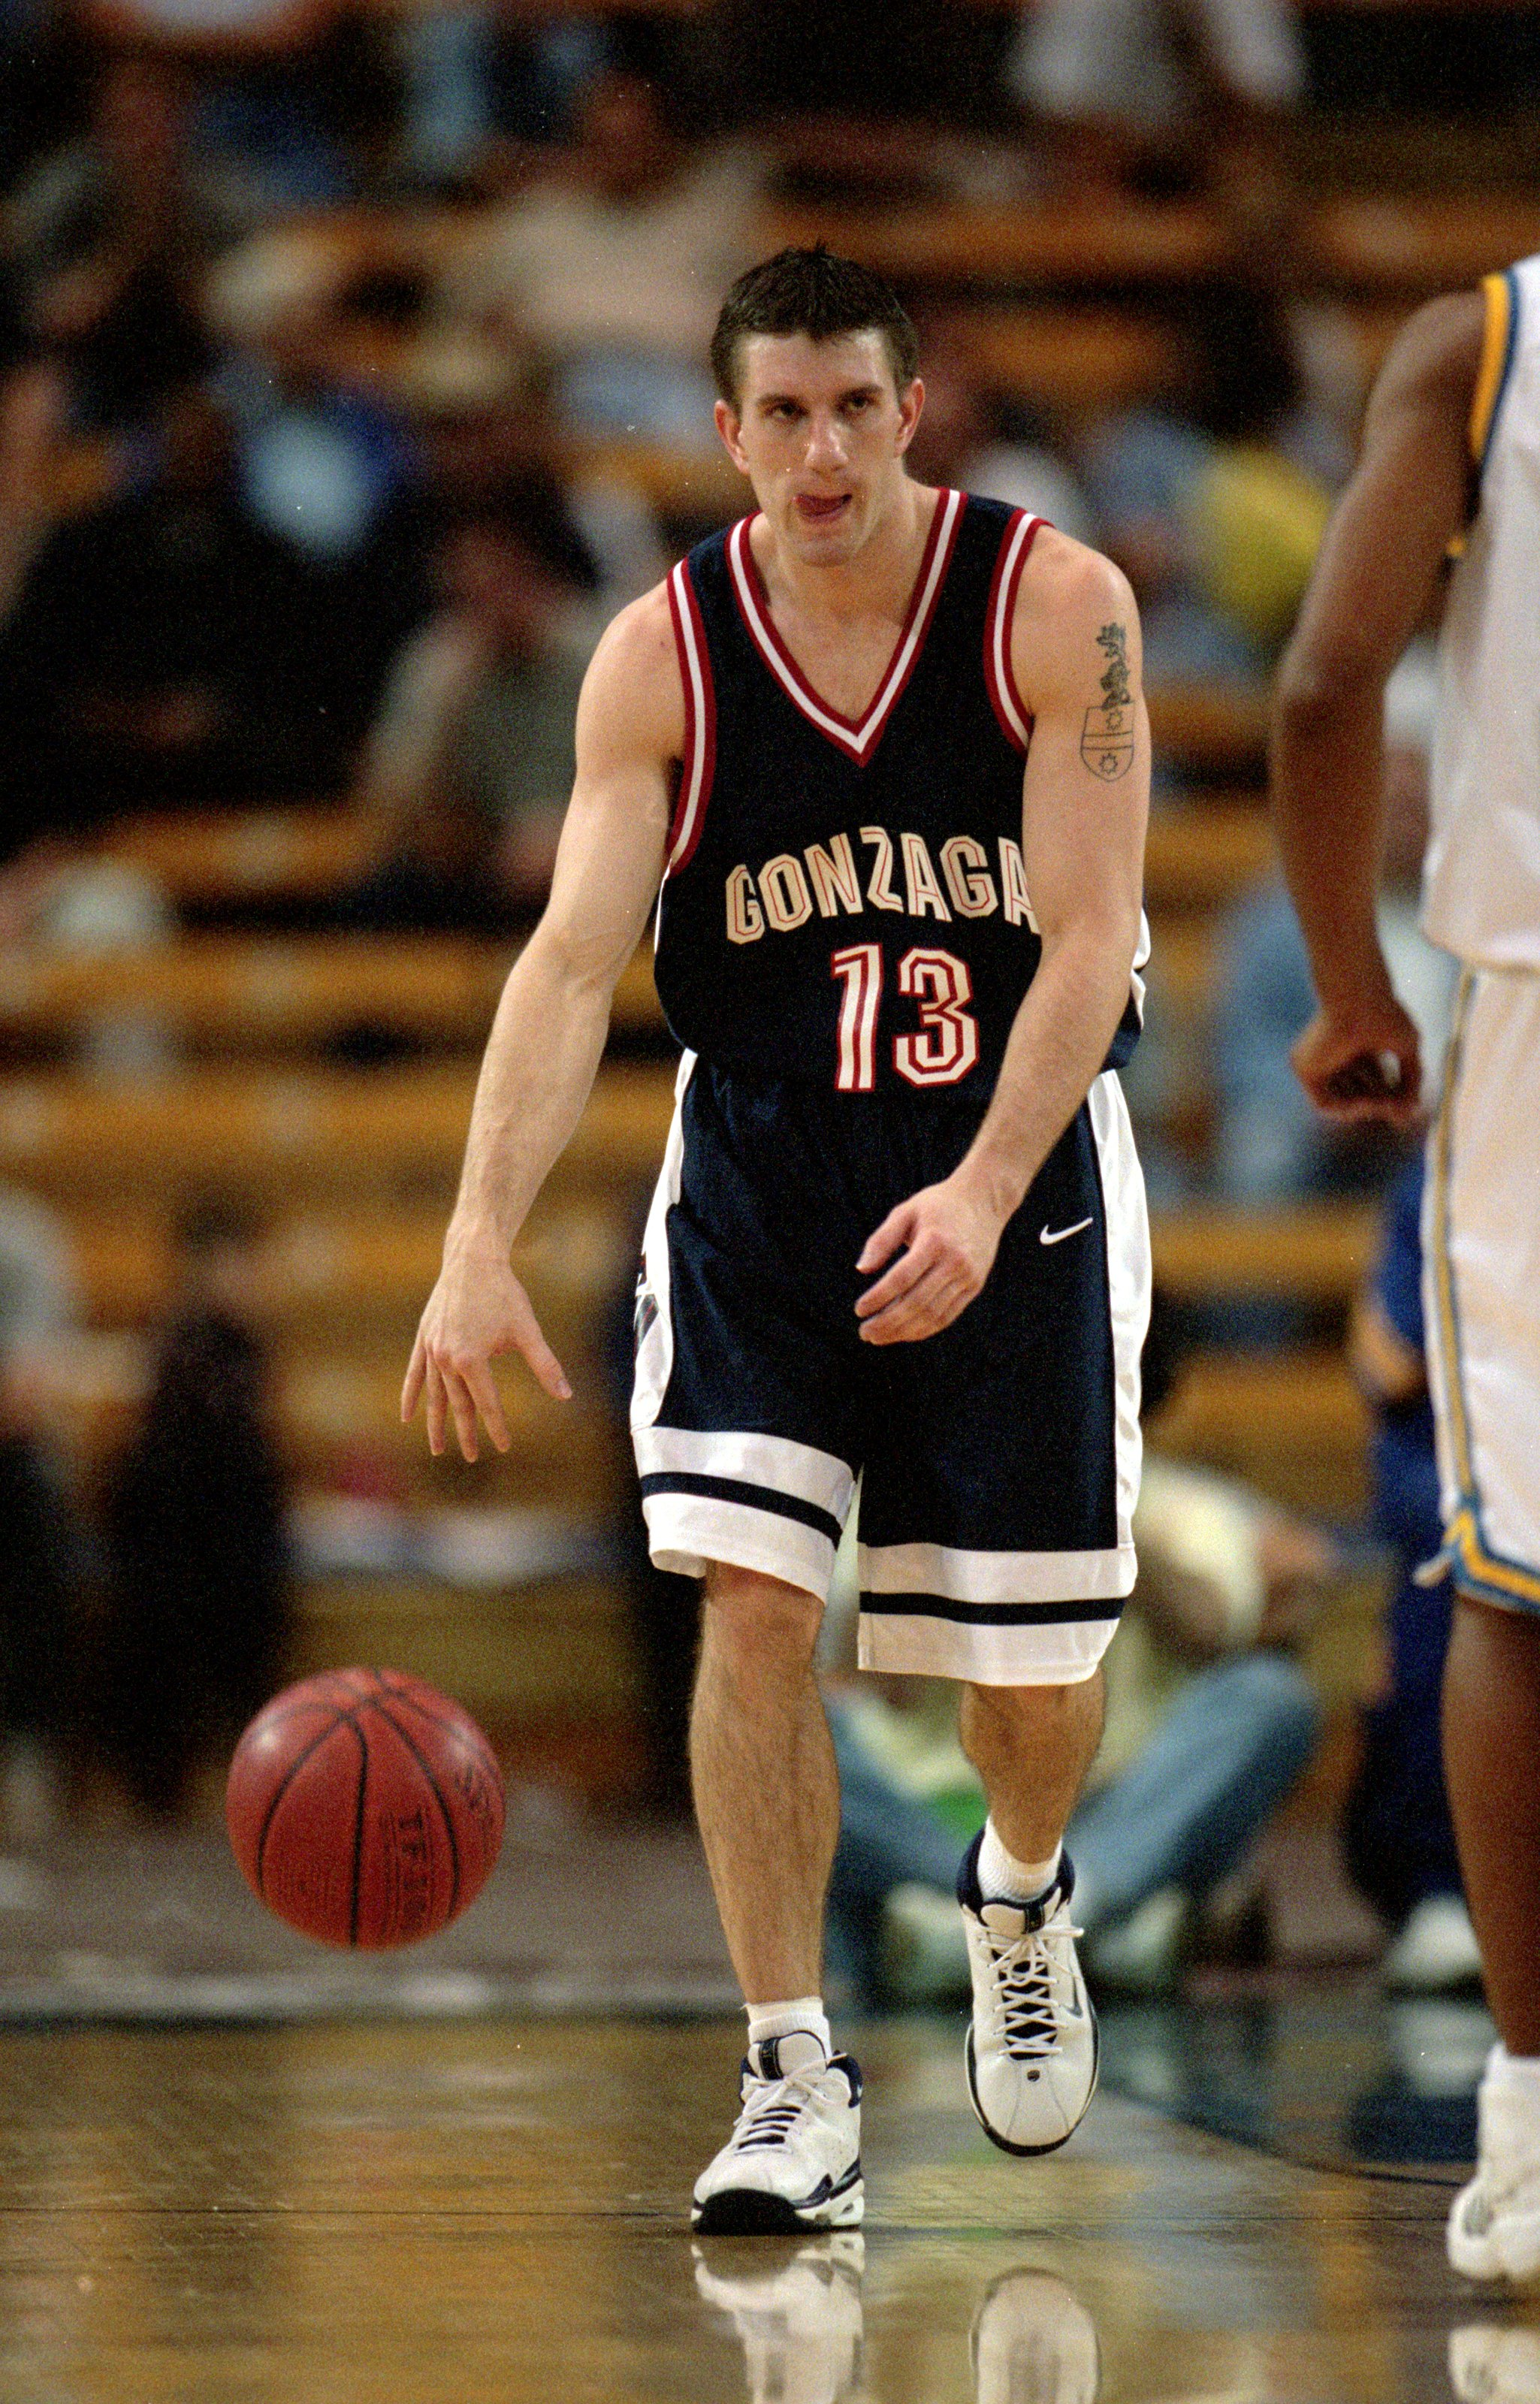 11 Dec 1999: Matt Santangelo #13 of the Gonzaga Bulldogs dribbles the ball down court during the game against the  UCLA Bruins at the Pauley Pavillion in Westwood, California. The Bulldogs defeated the Bruins 59-43. Mandatory Credit: Jeff Gross  /Allsport